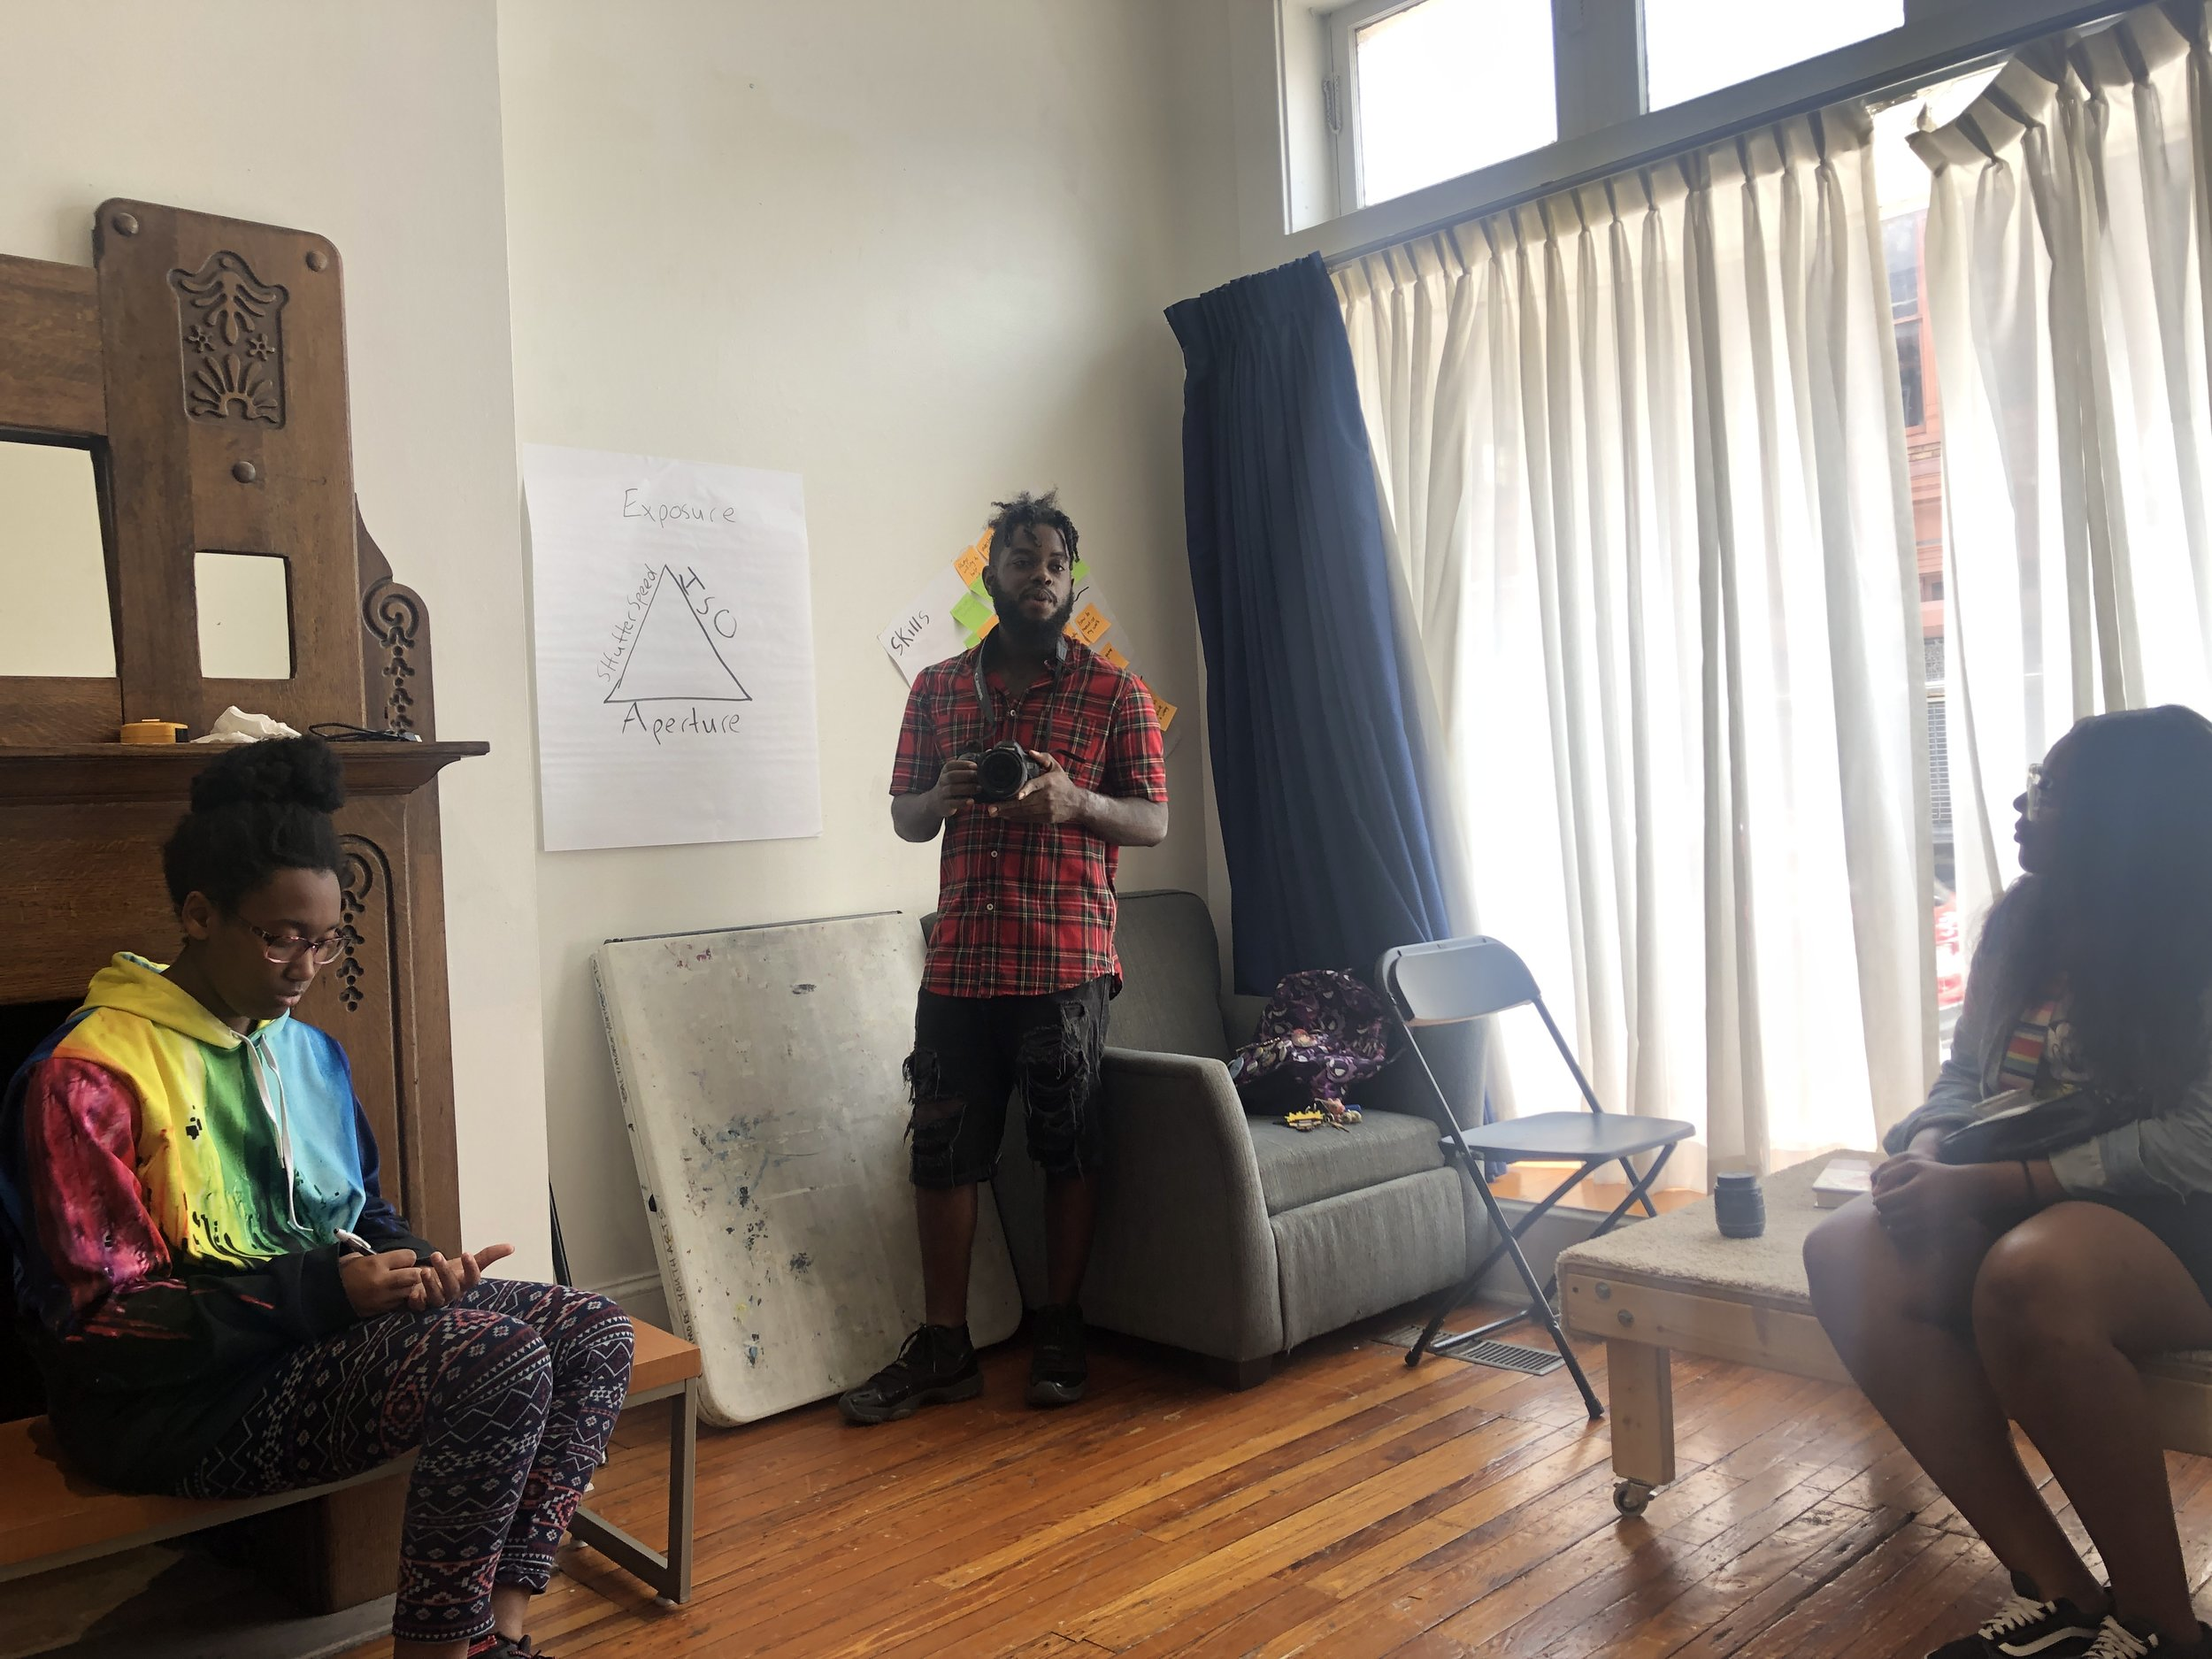 Kyle Yearwood, a motion graphics artist from Baltimore City, talks to the Mixed Media Team about his experience and artwork using photography and animation.